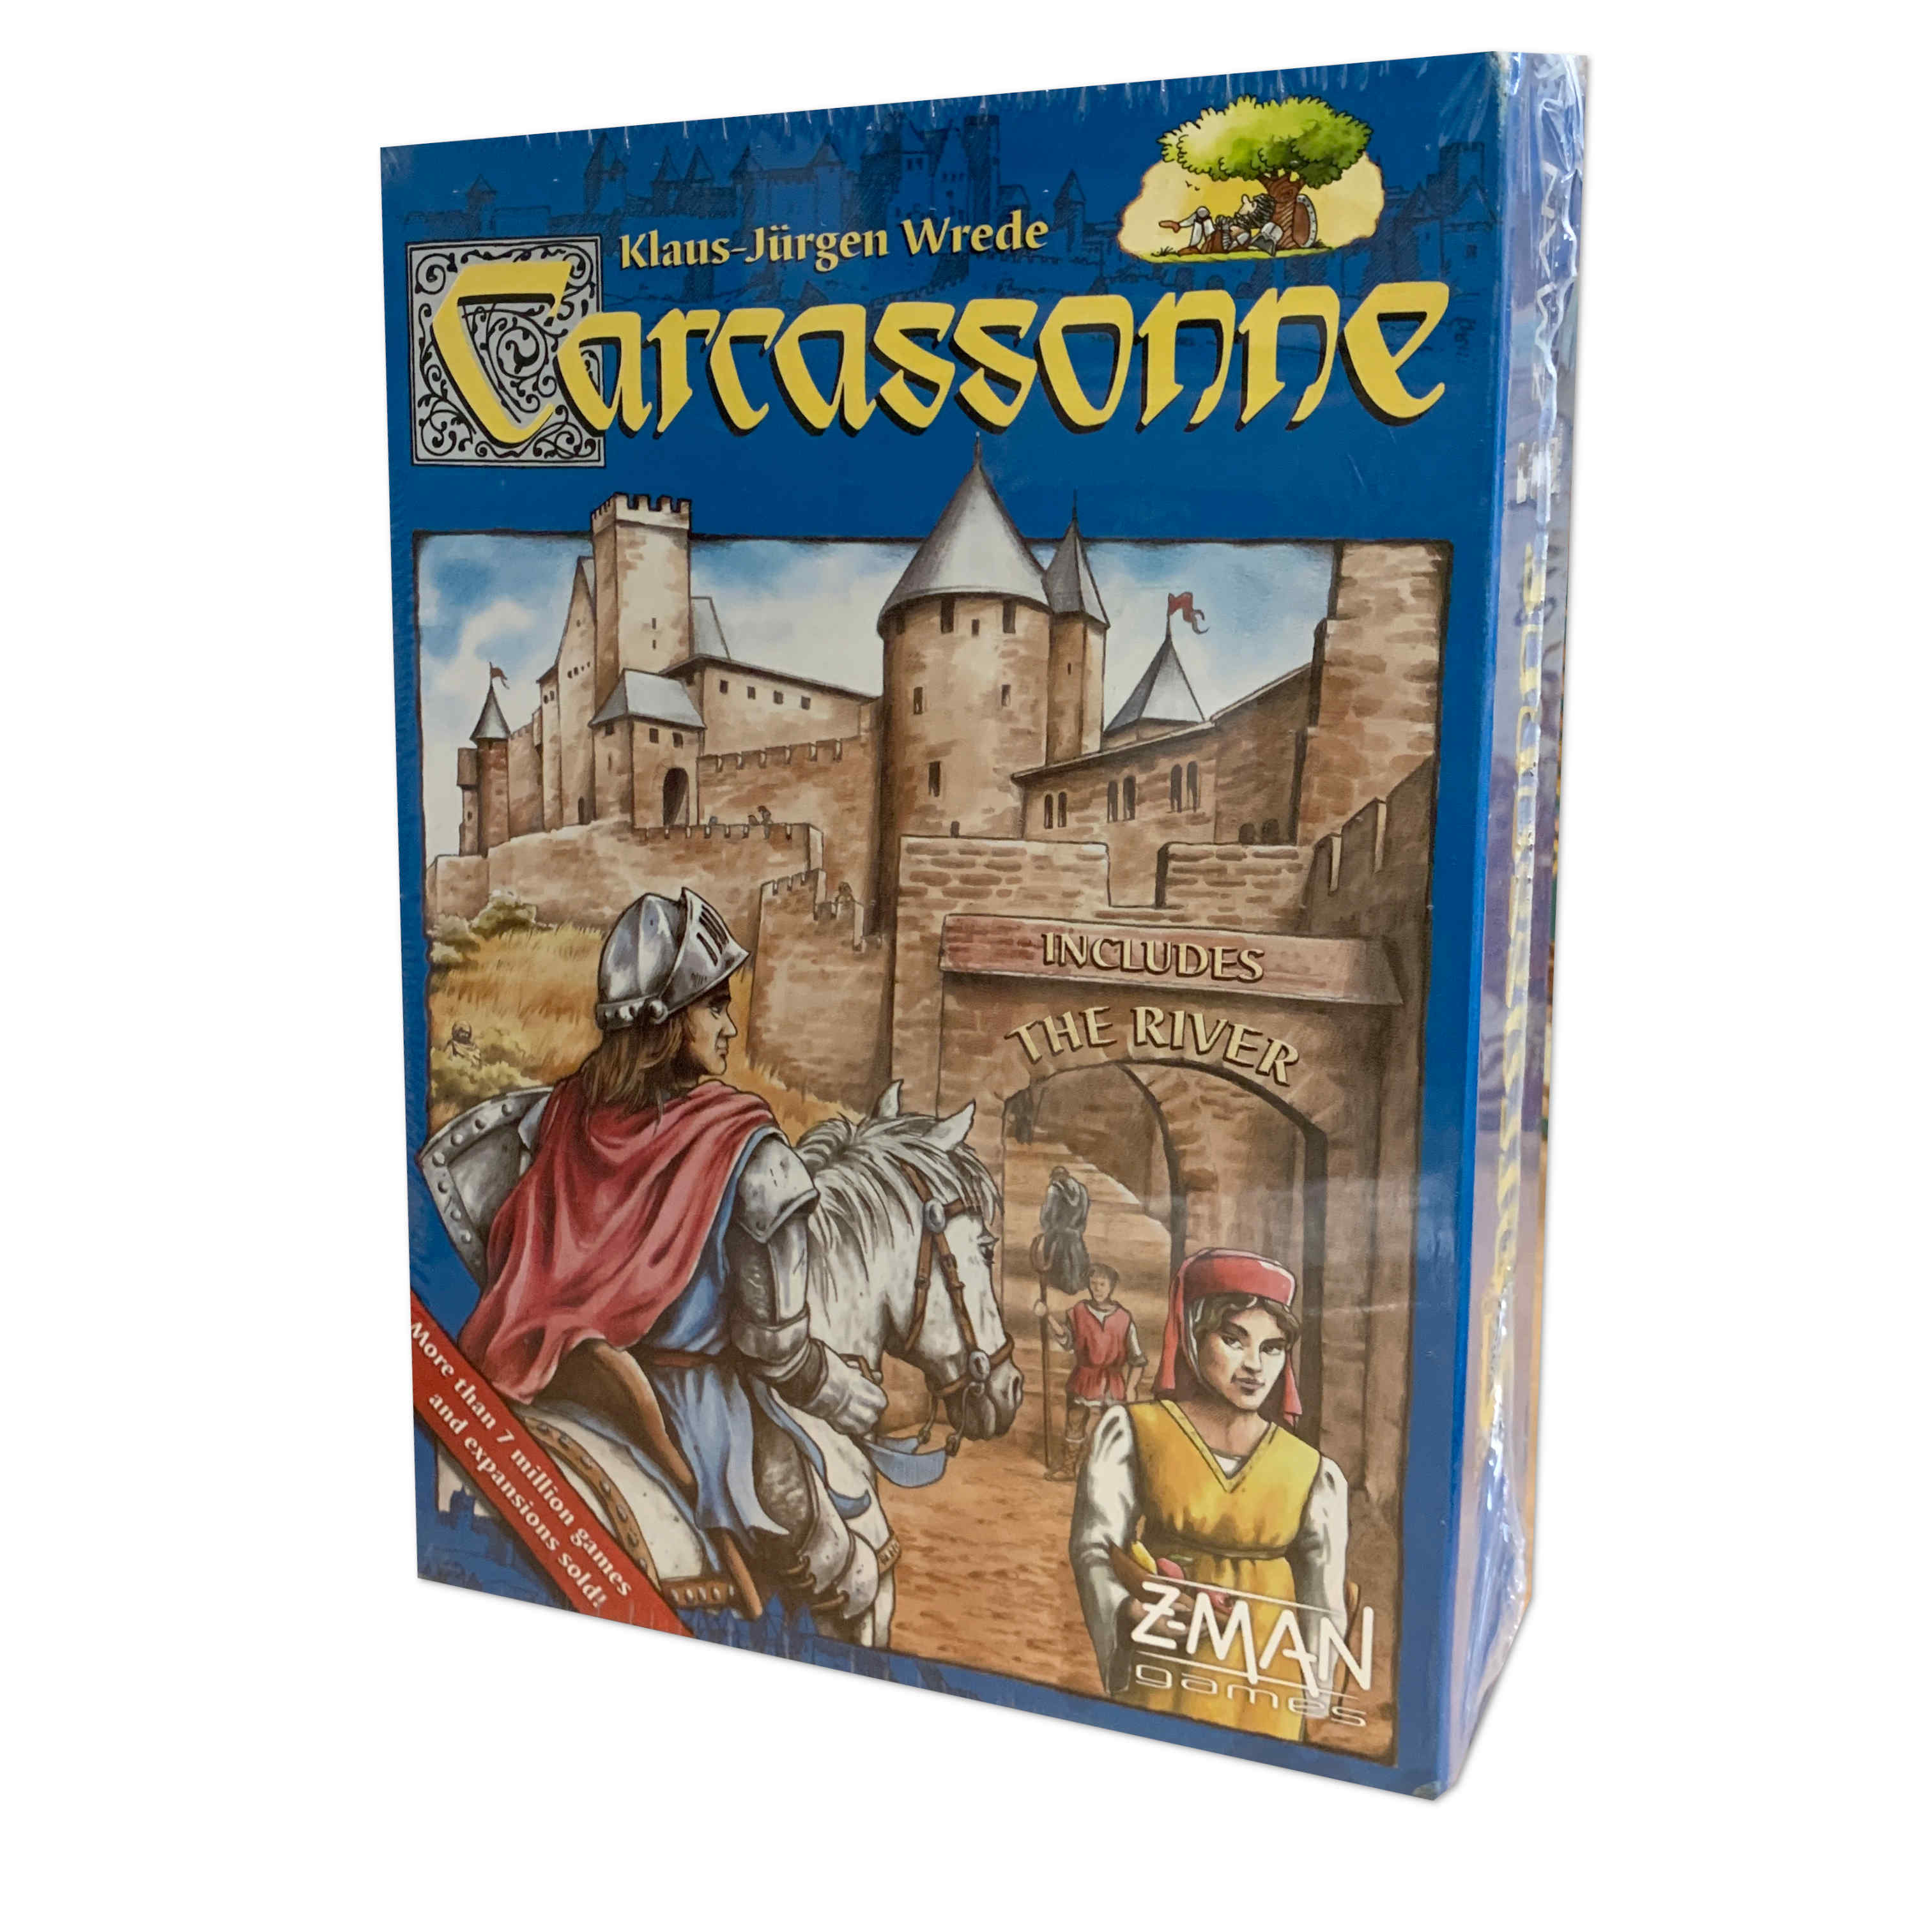 Z-Man Games Carcassonne New Edition Board Game Double the fun with 71 more tiles